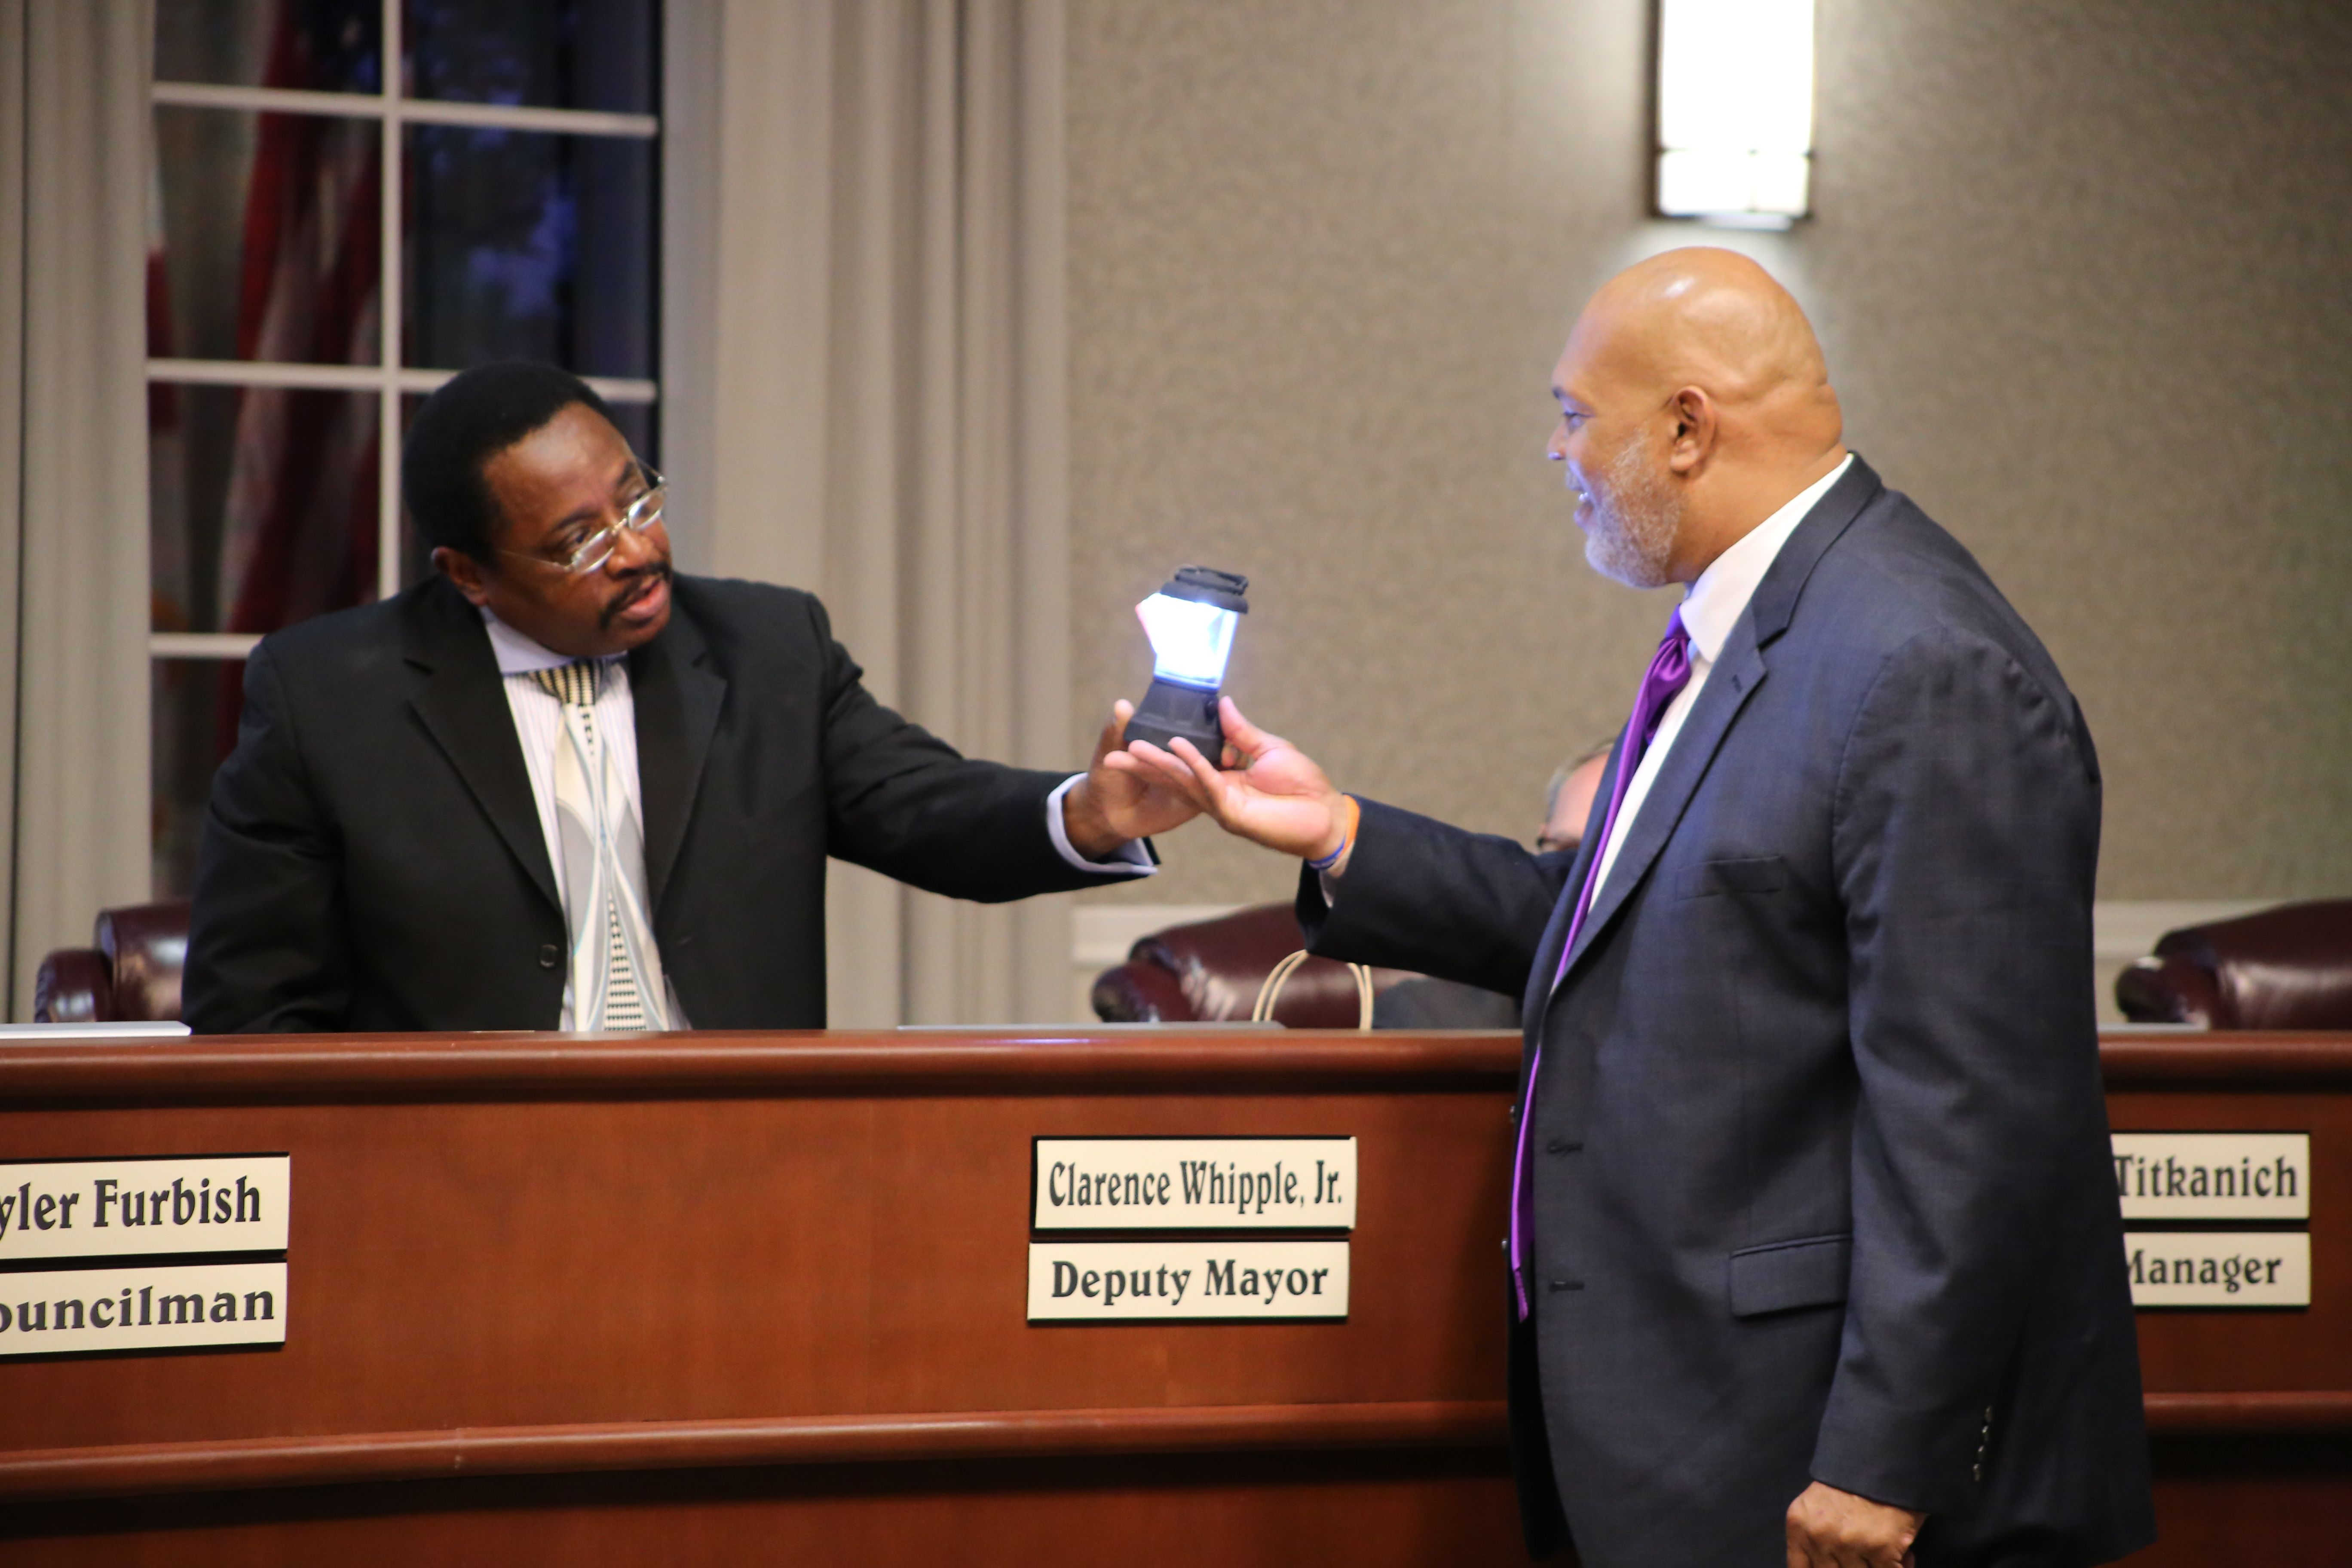 Passing of the torch from Councilman Whipple to Councilman